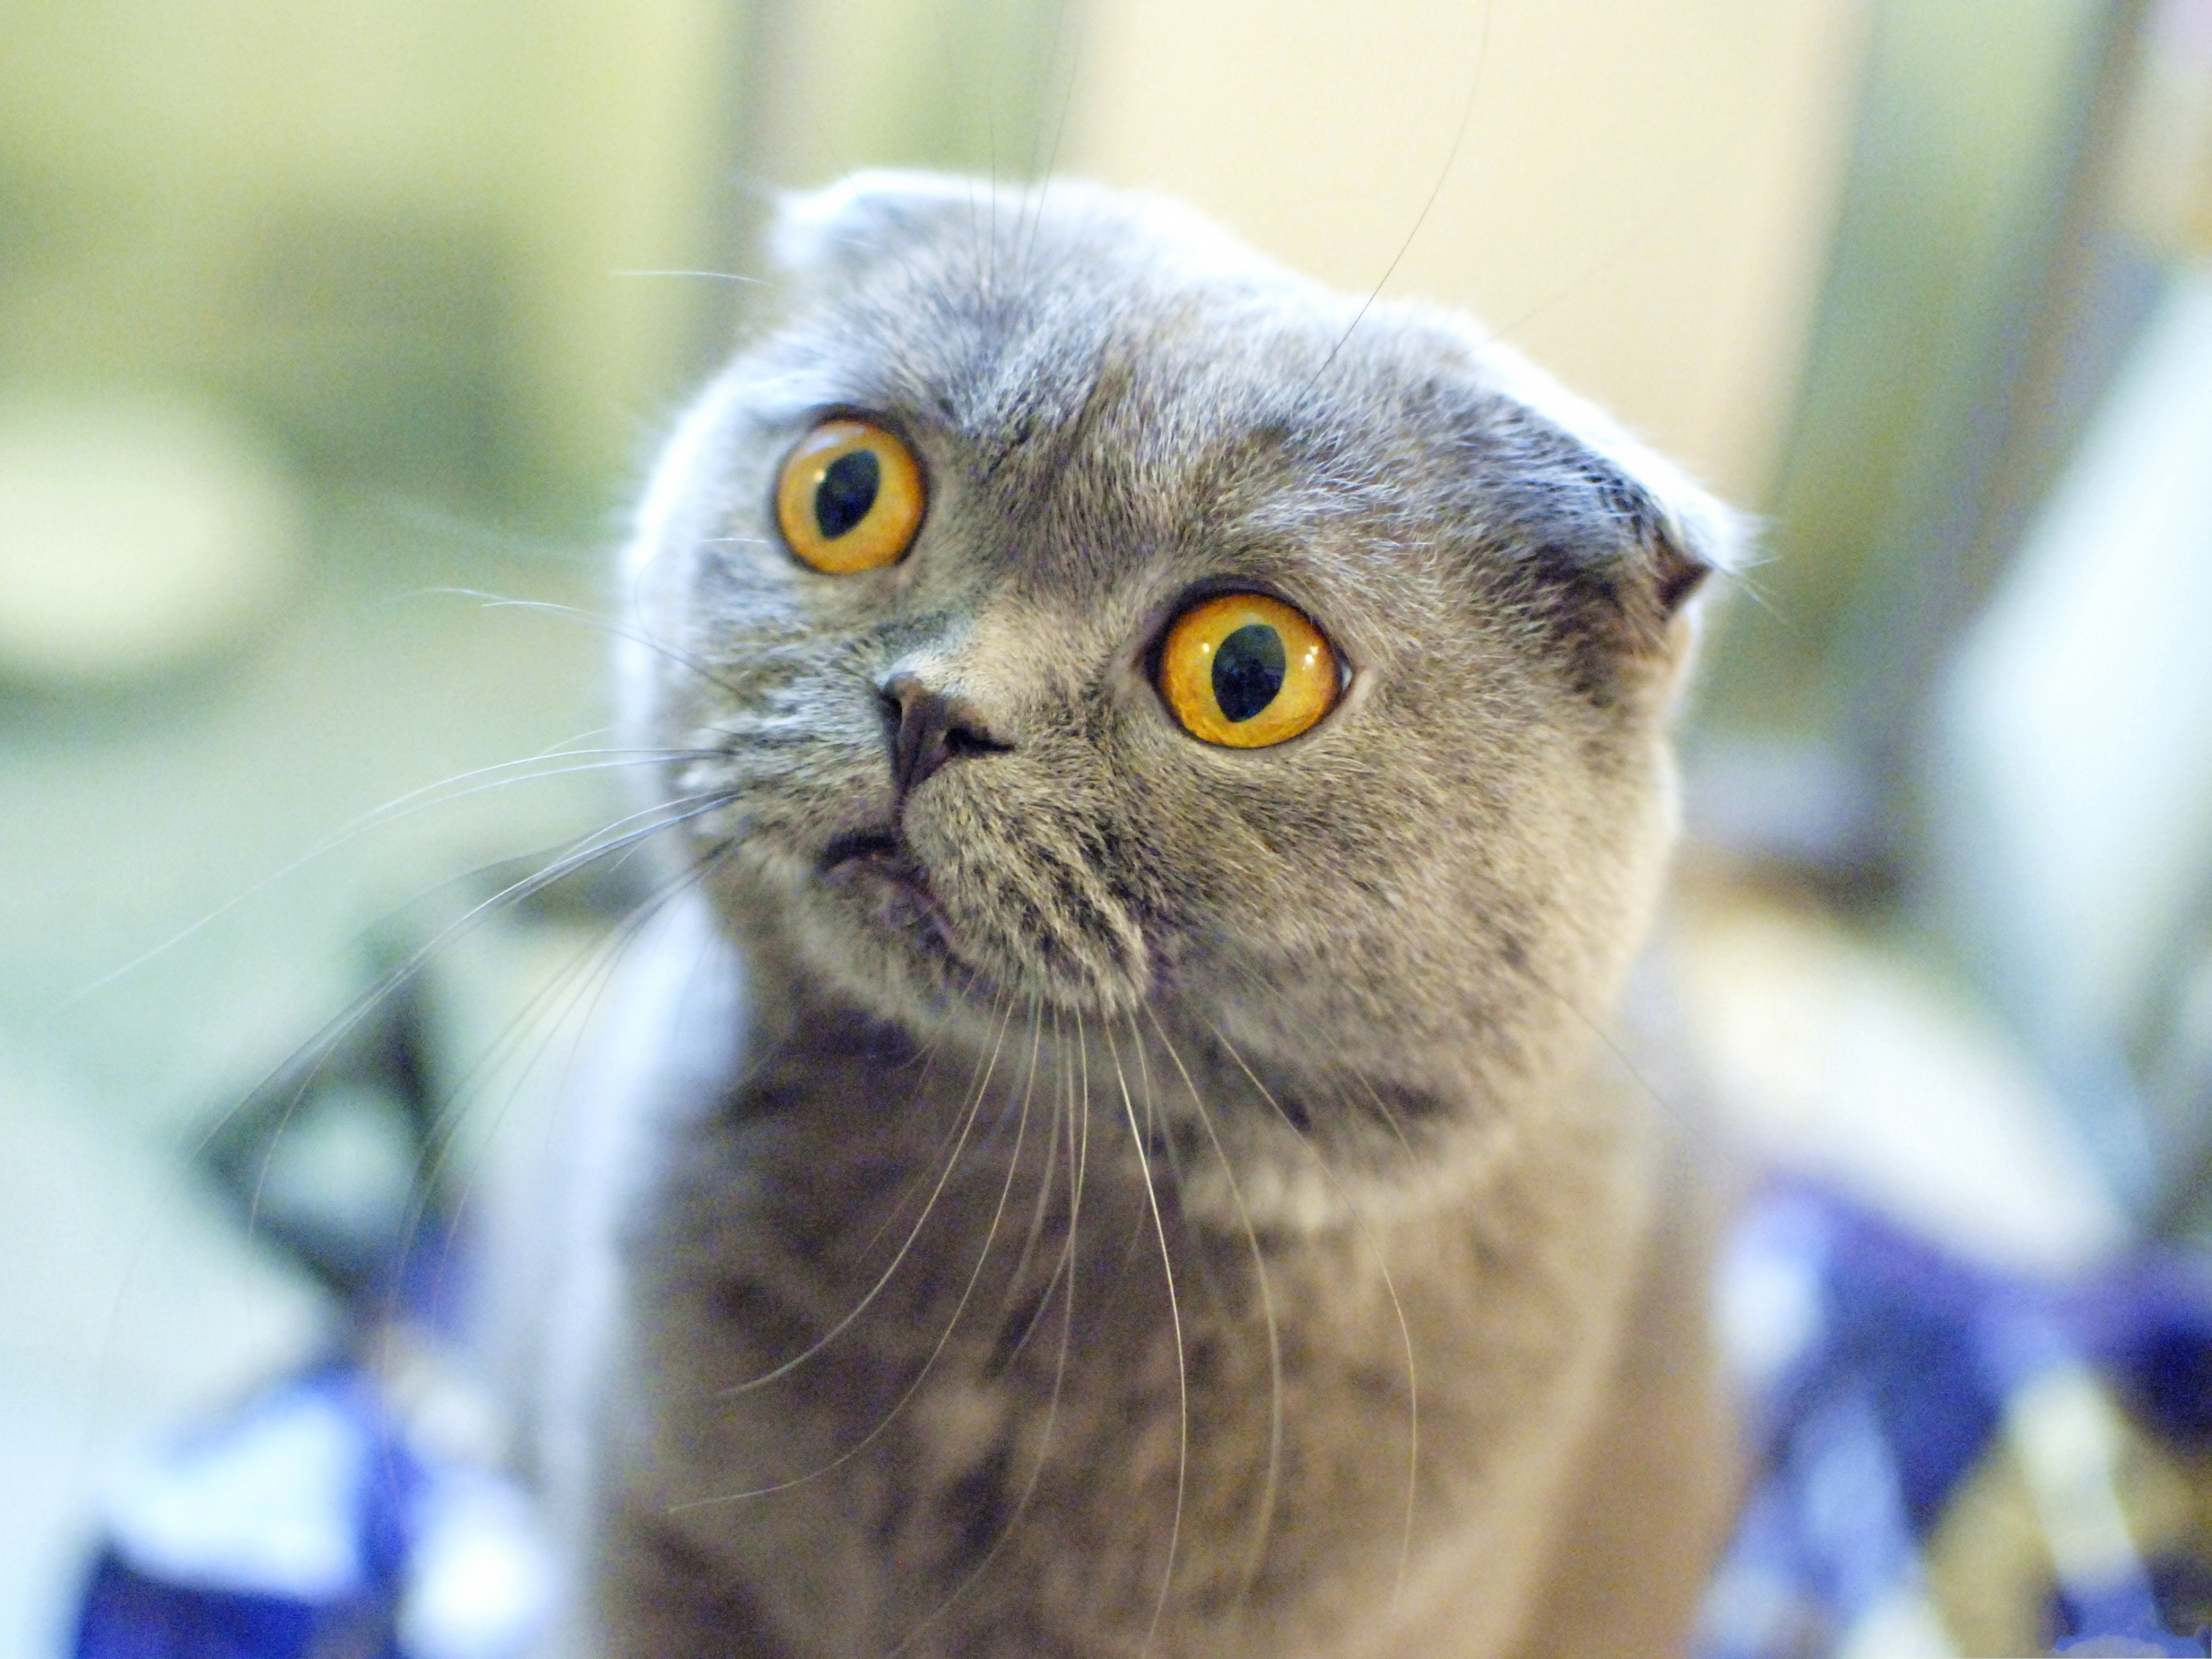 click to free download the wallpaper--Funny Cat Pics, Scottish Fold Cat in Surprised Facial Expression 3200X2400 free wallpaper download